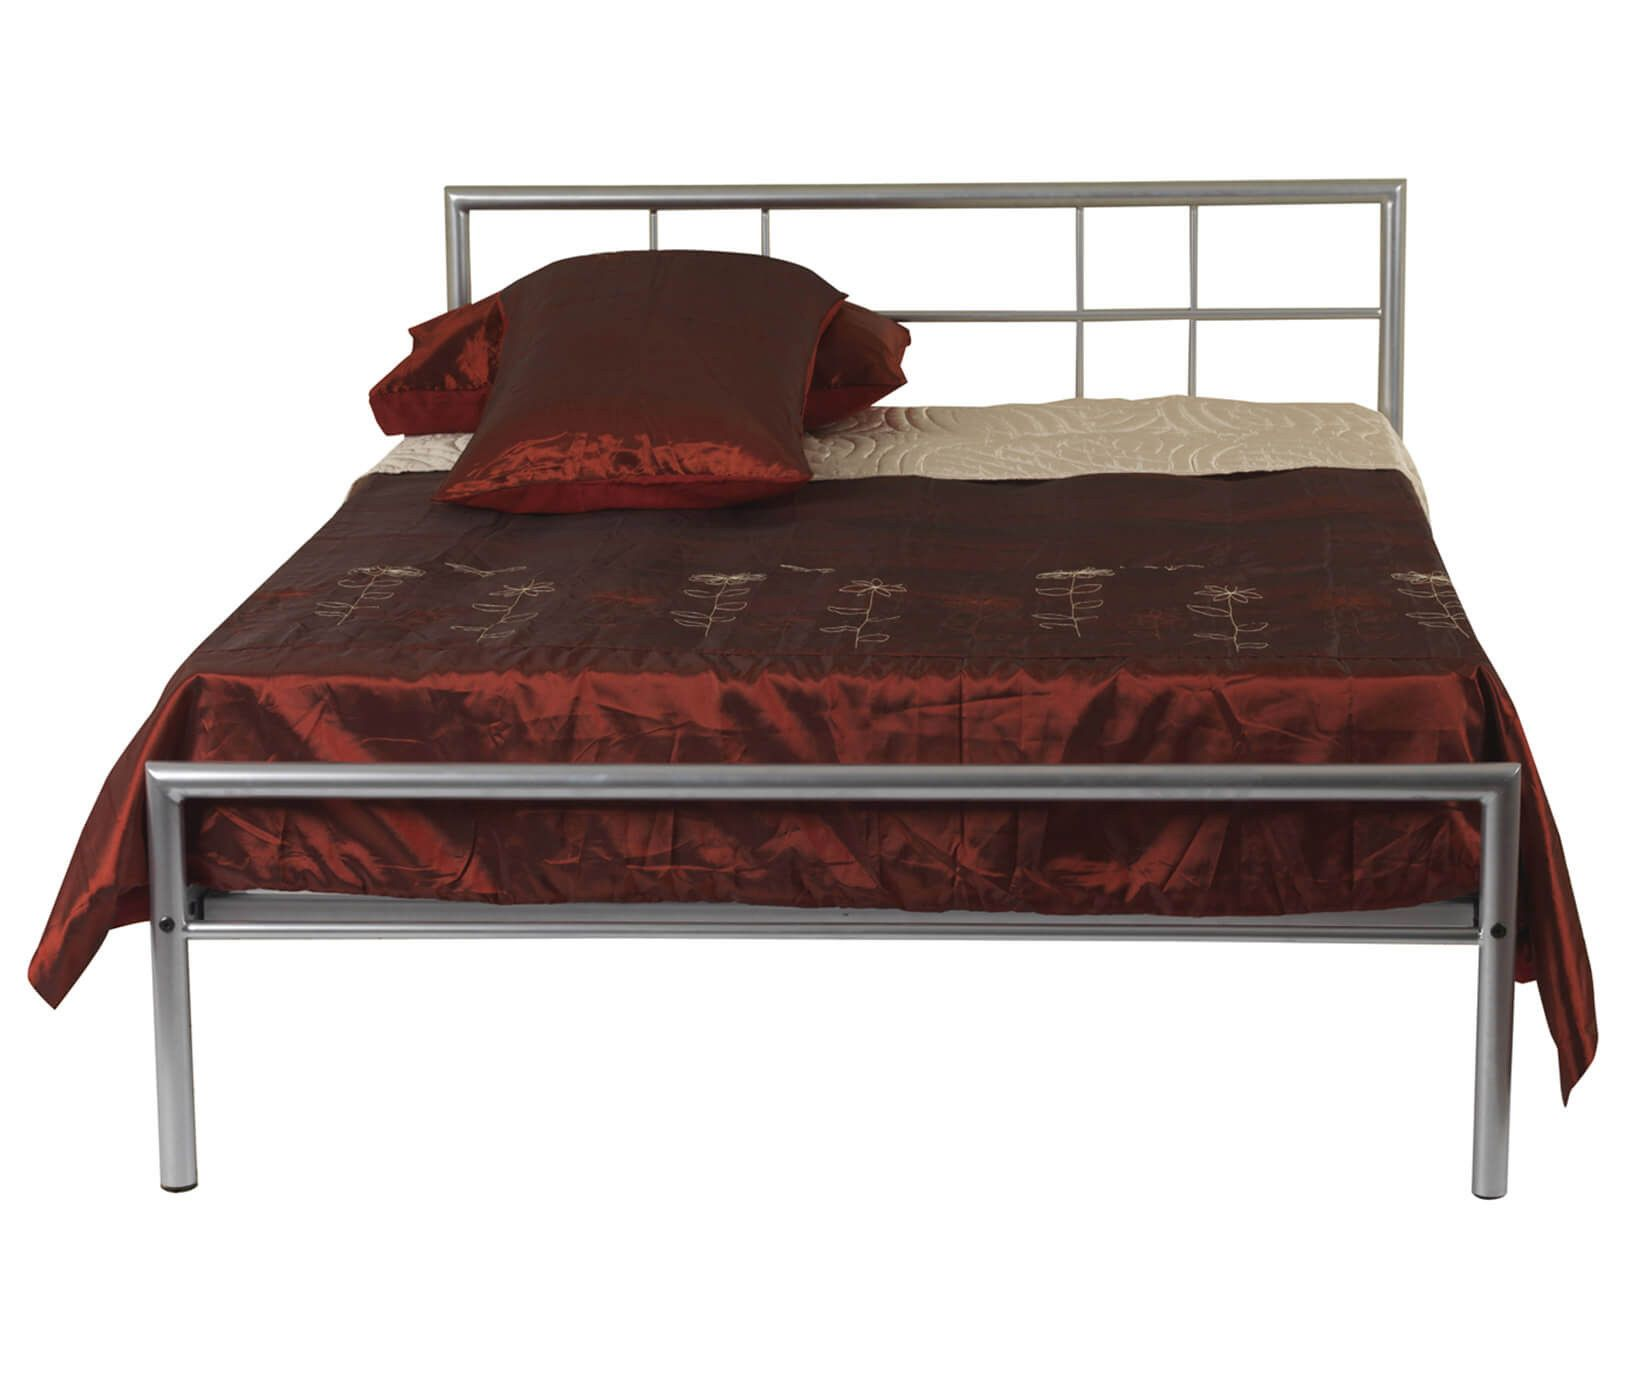 Cheap Beds, Bed Frames, Mattresses, Headboards